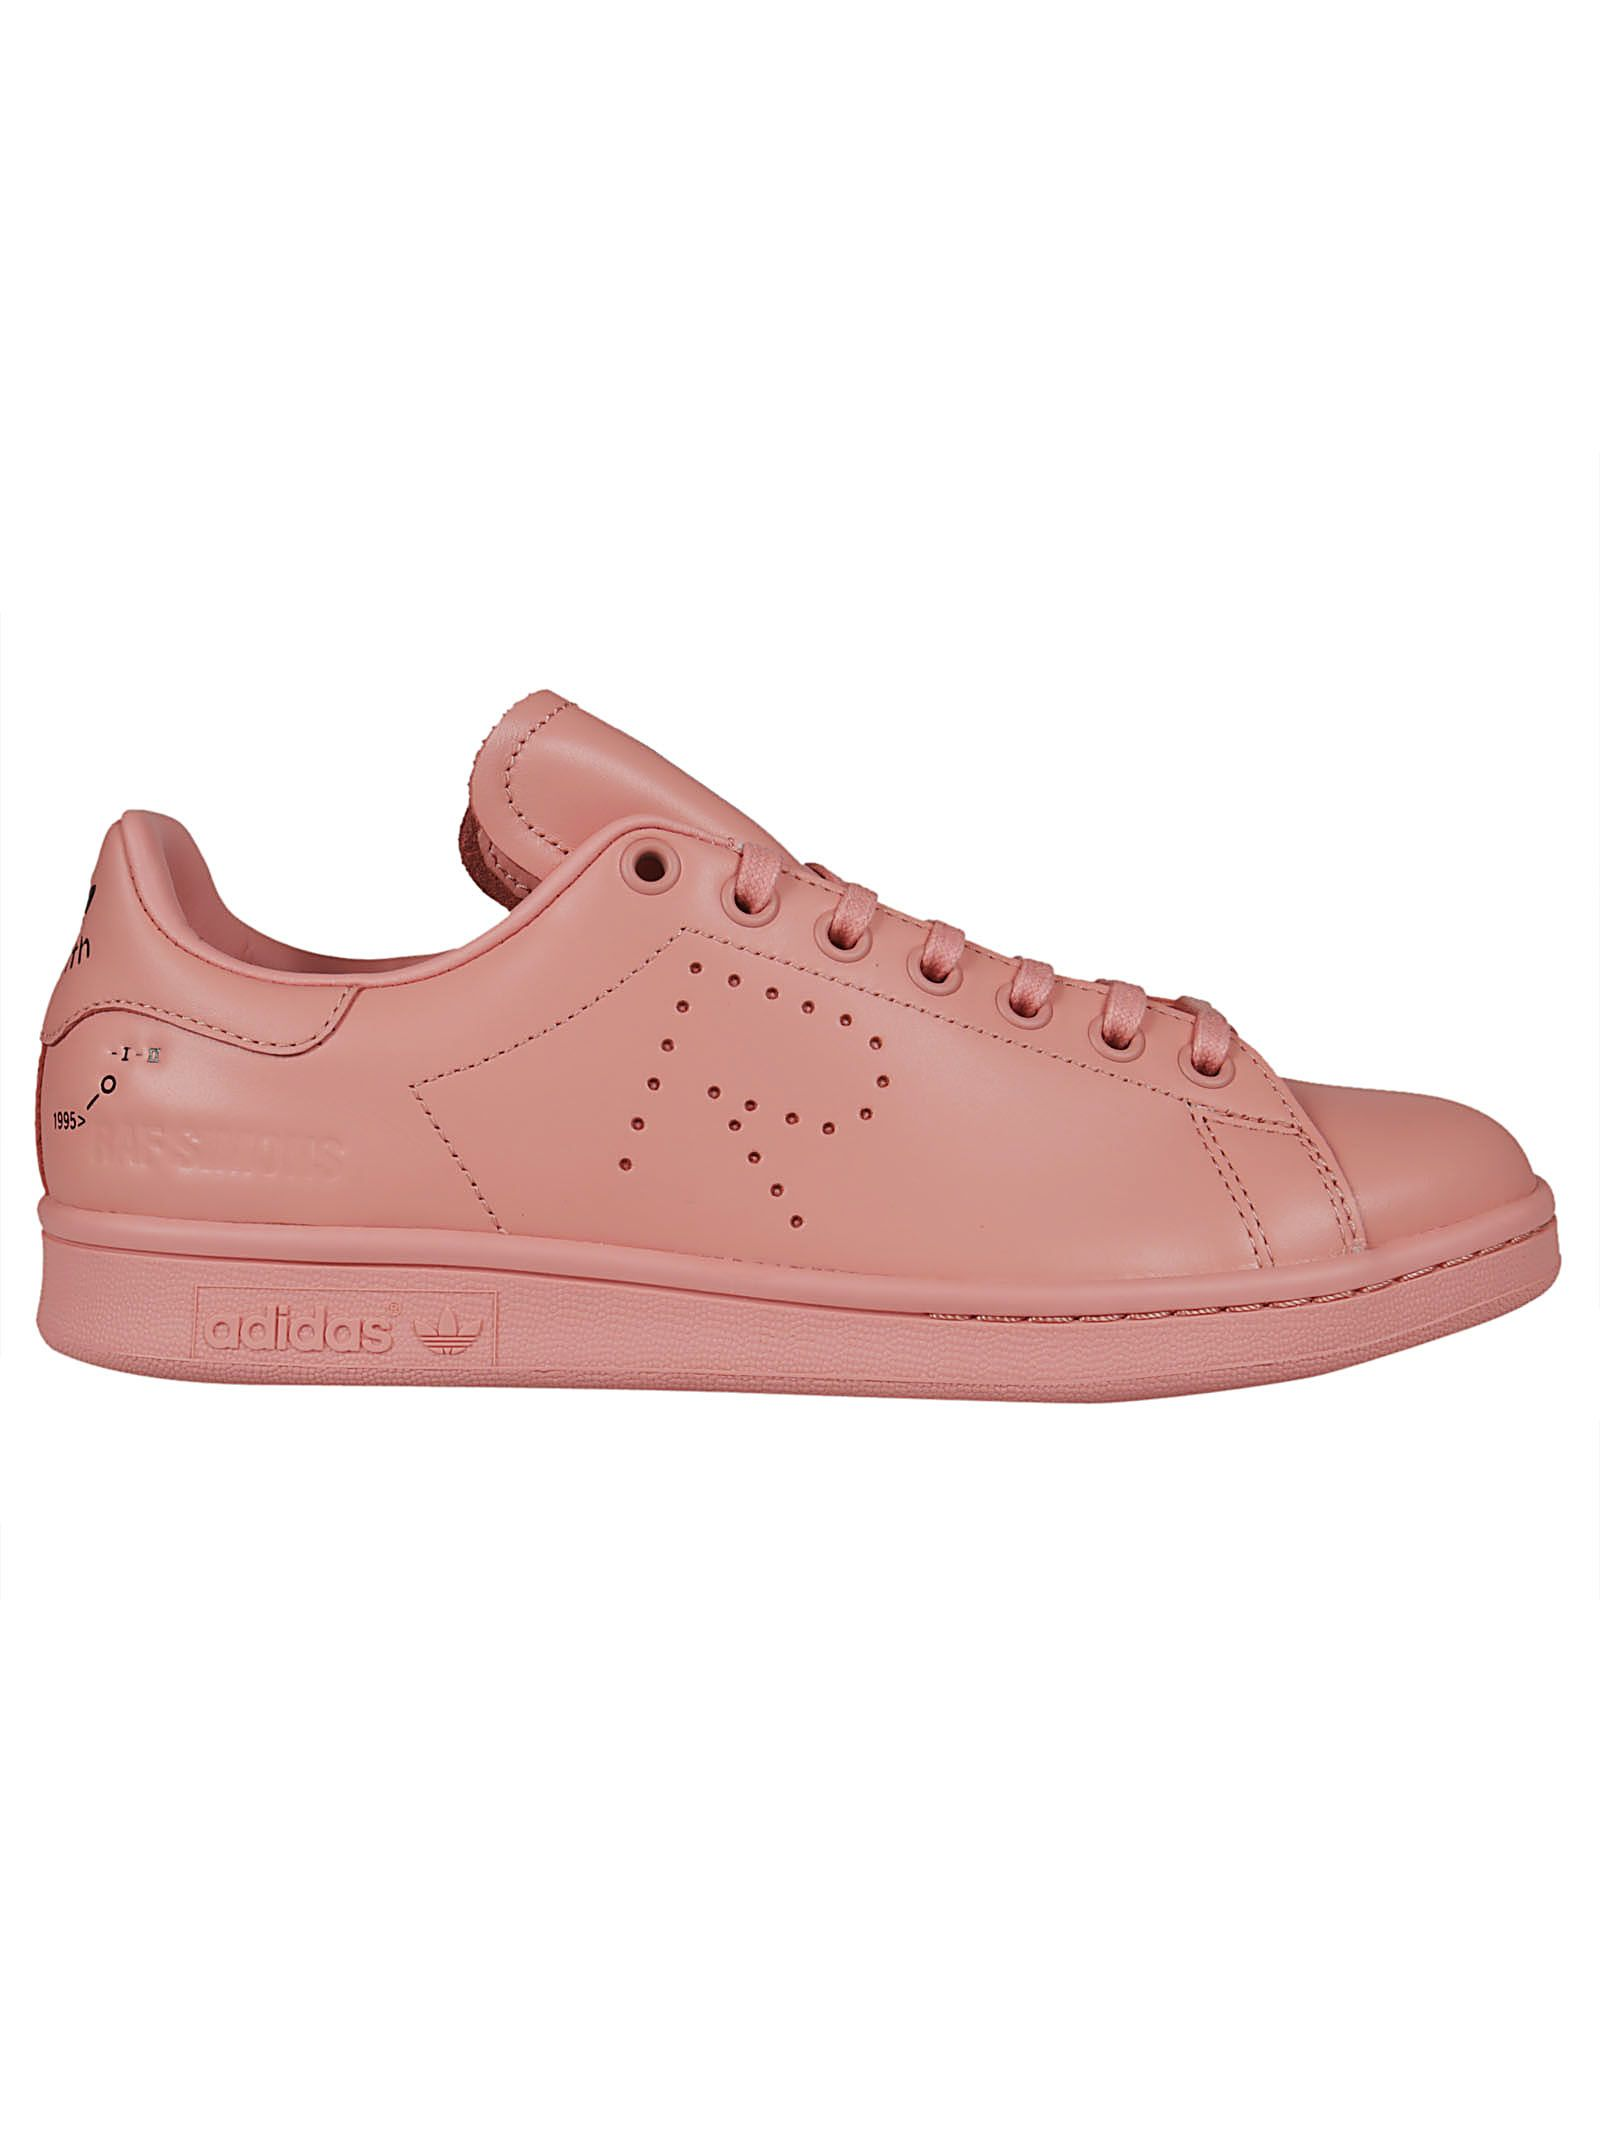 online store 84994 f4853 Raf Simons Pink Adidas Originals Edition Stan Smith Sneakers In 00031 Pink